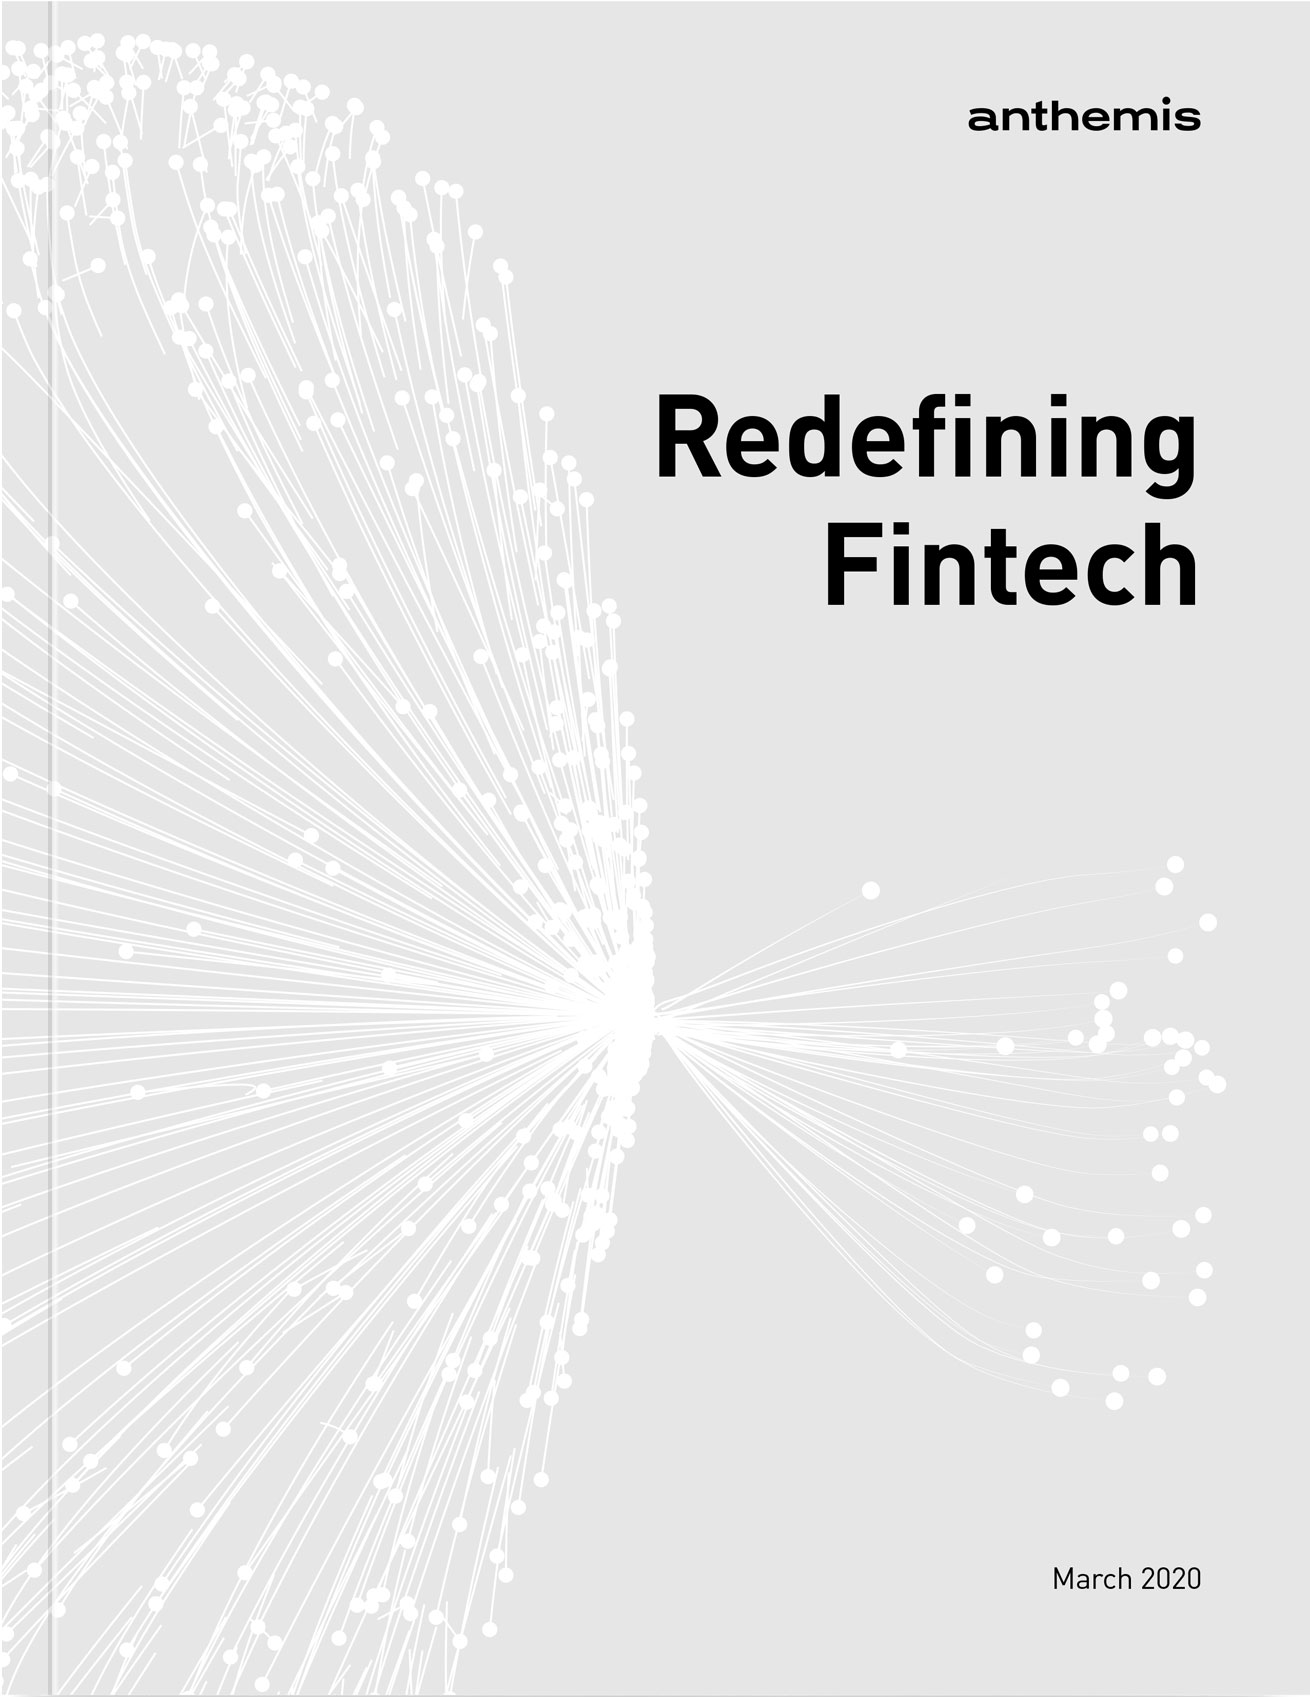 Anthemis-Redefining-Fintech-White-Paper-Cover